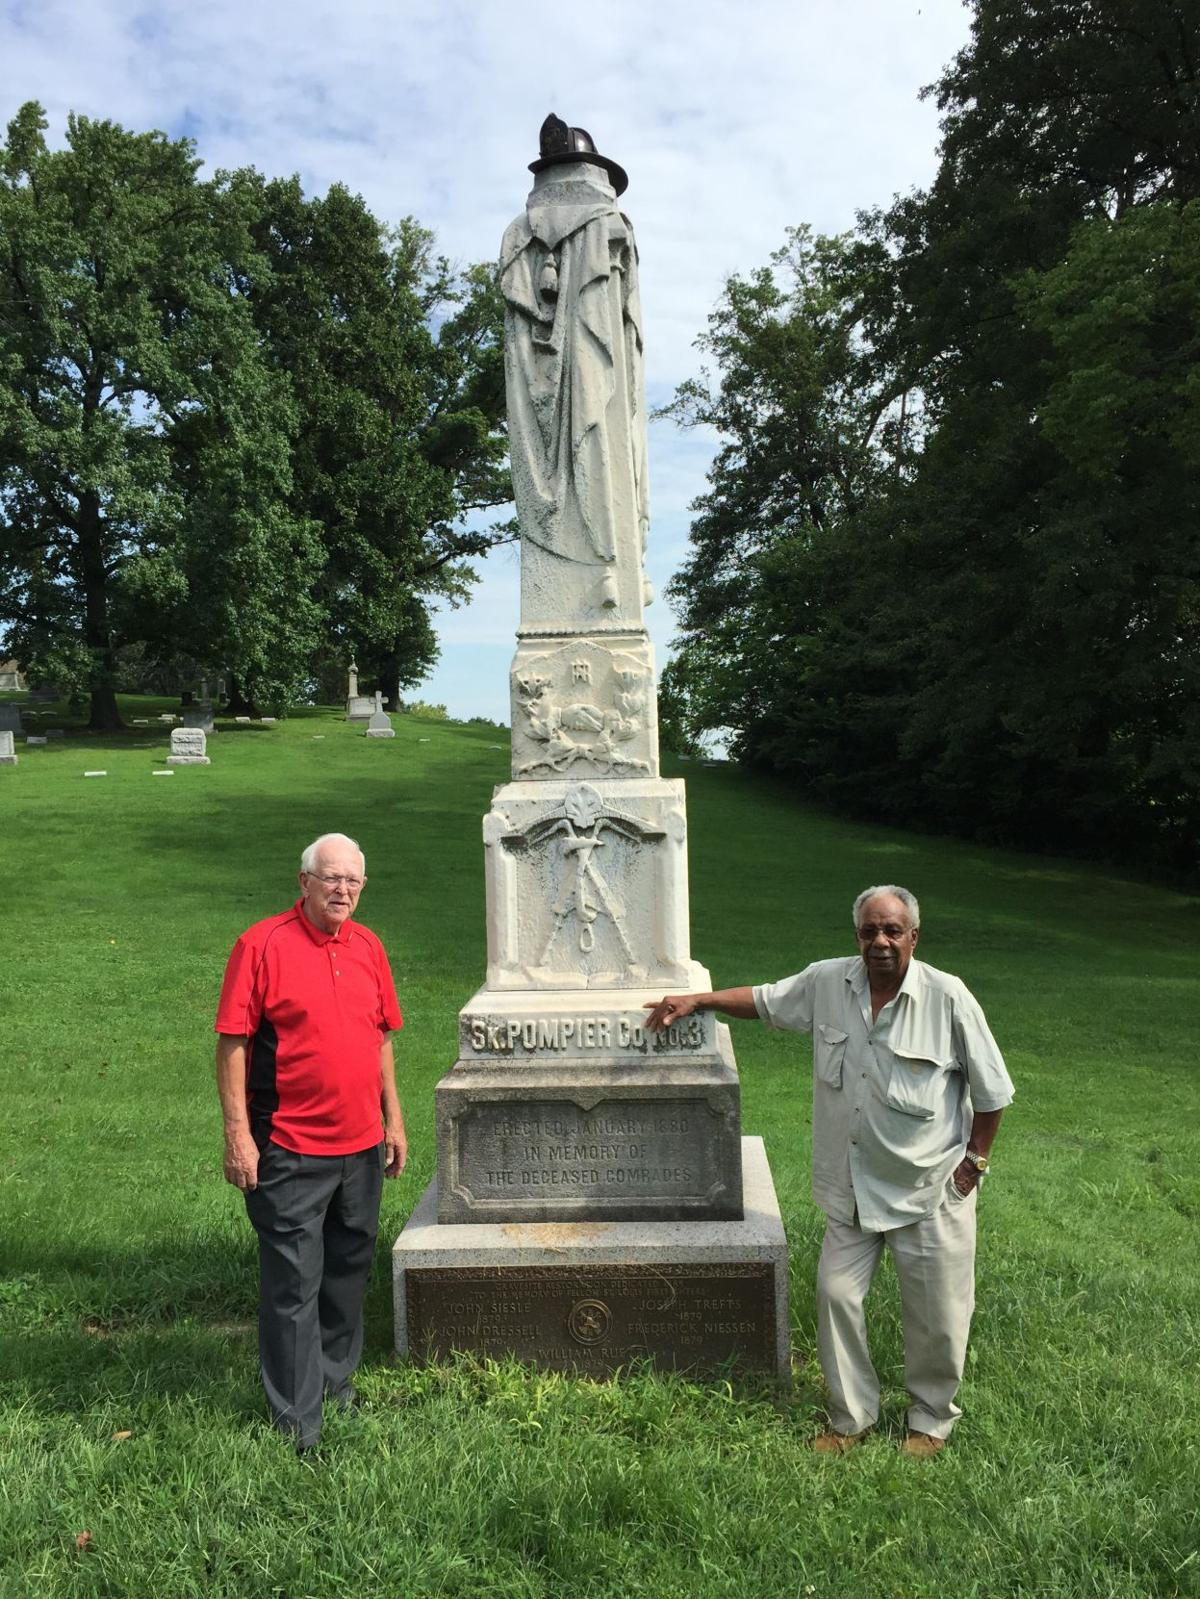 Fireman's Fund monument at Bellefontaine Cemetery